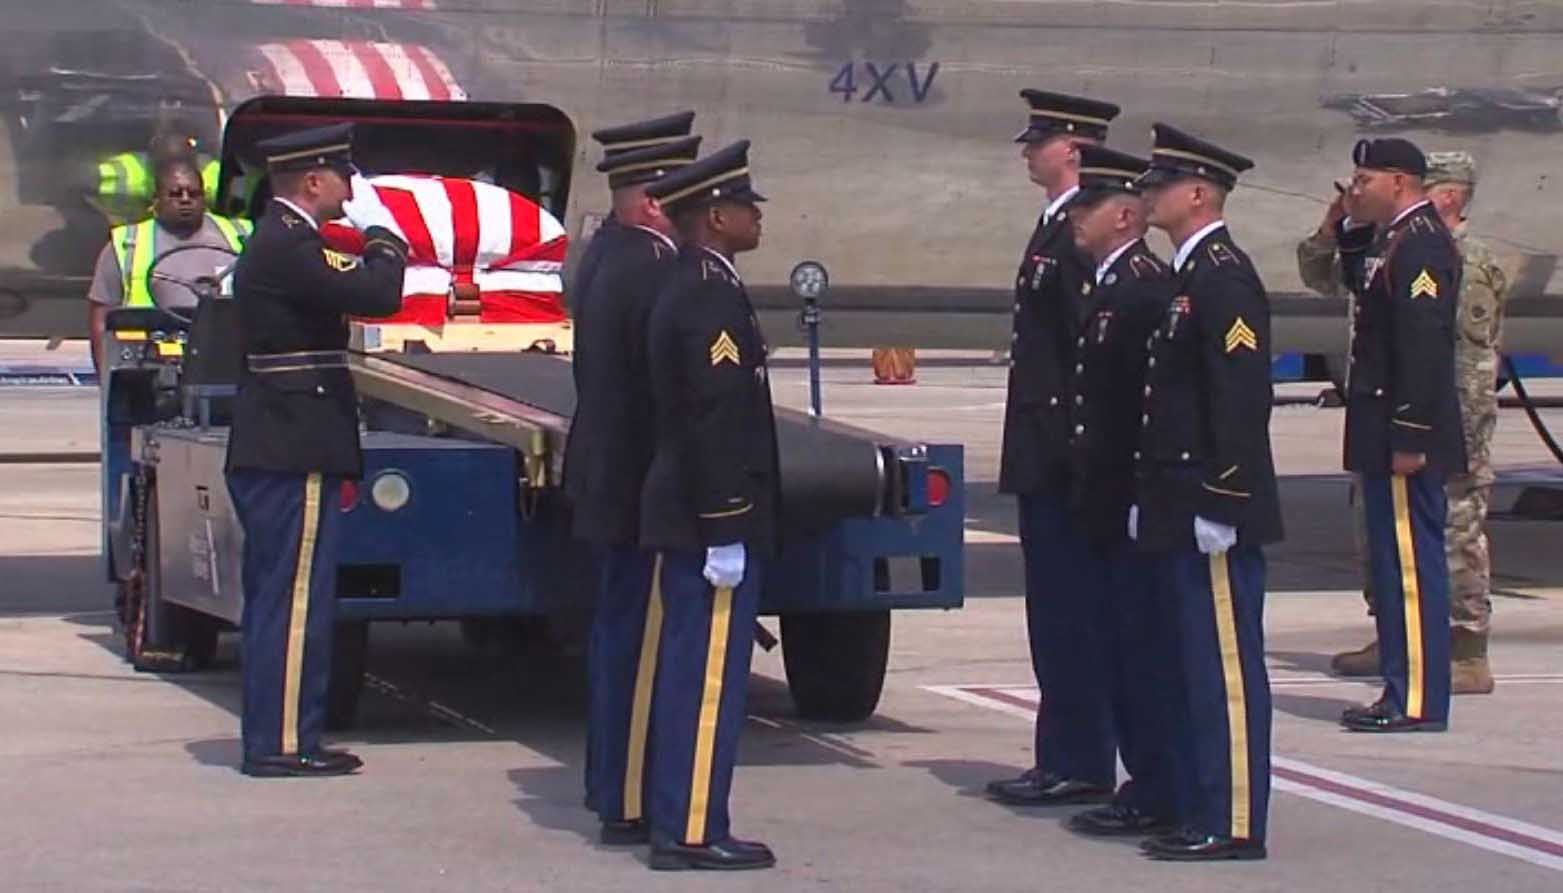 The remains of a World War II veteran are home after more than 70 years. (Source: KJRH via CNN)